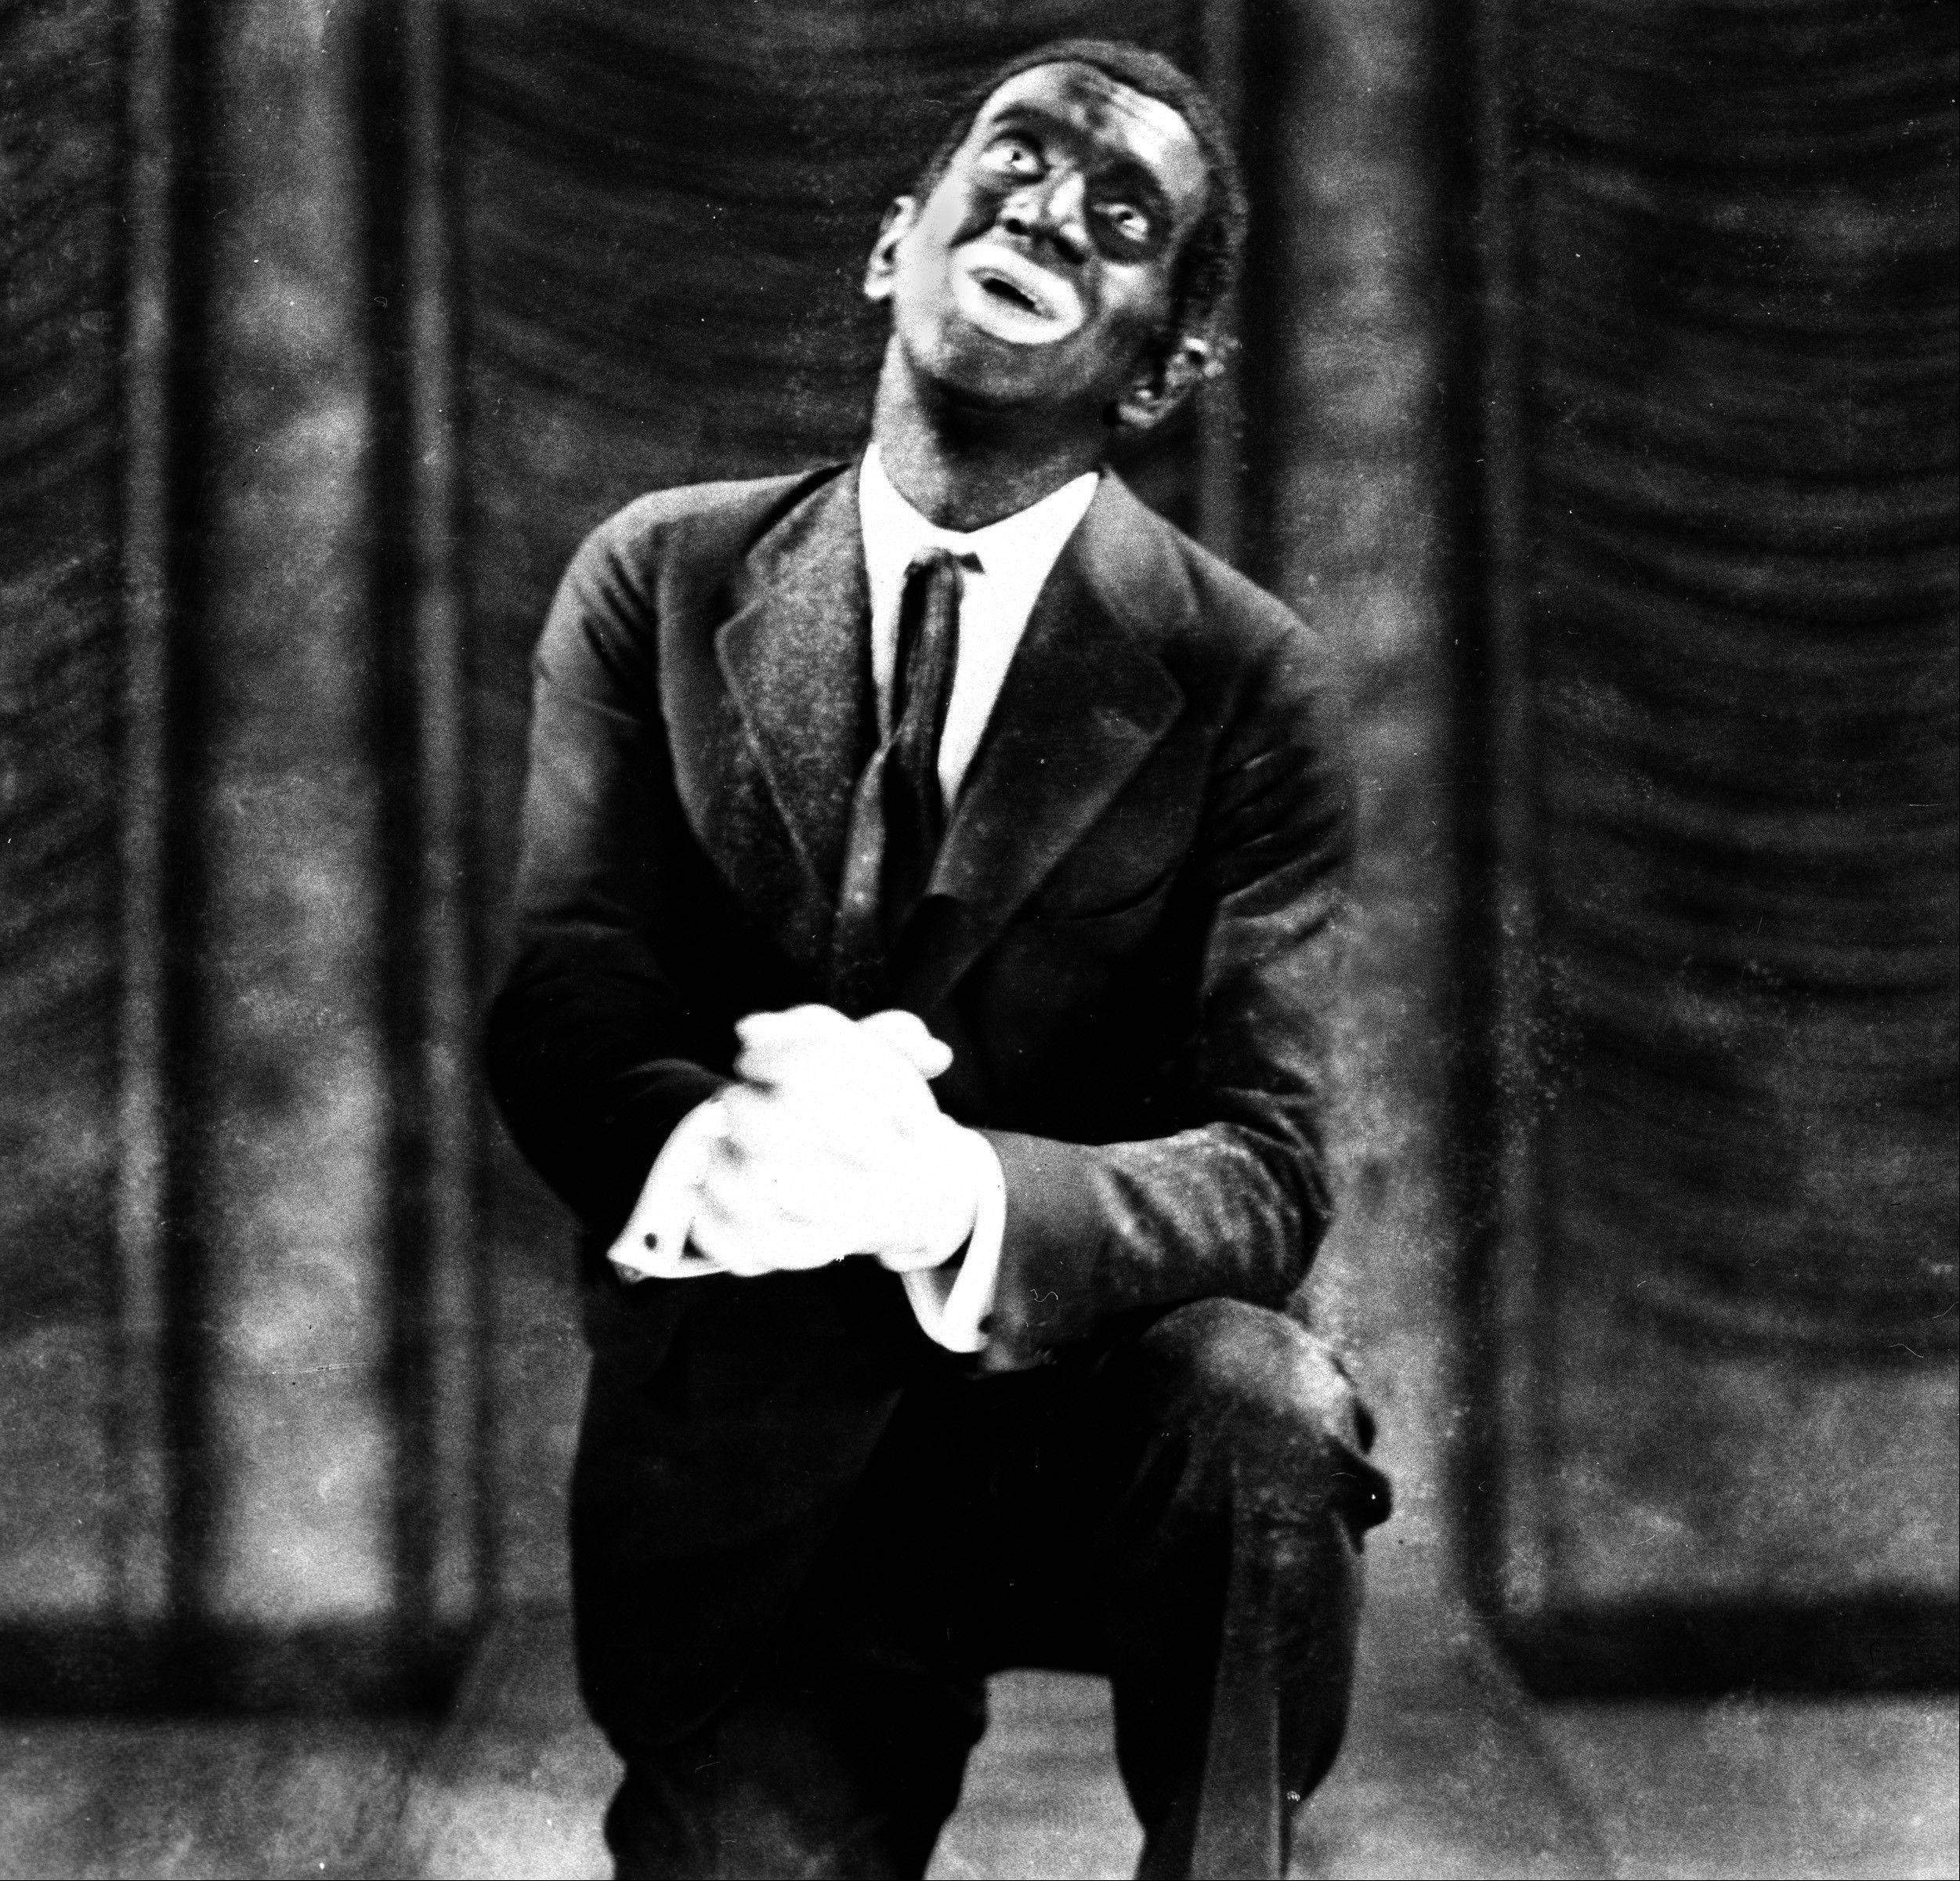 This 1927 image originally released by Warner Bros., shows Al Jolson in blackface makeup in the movie �The Jazz Singer.�